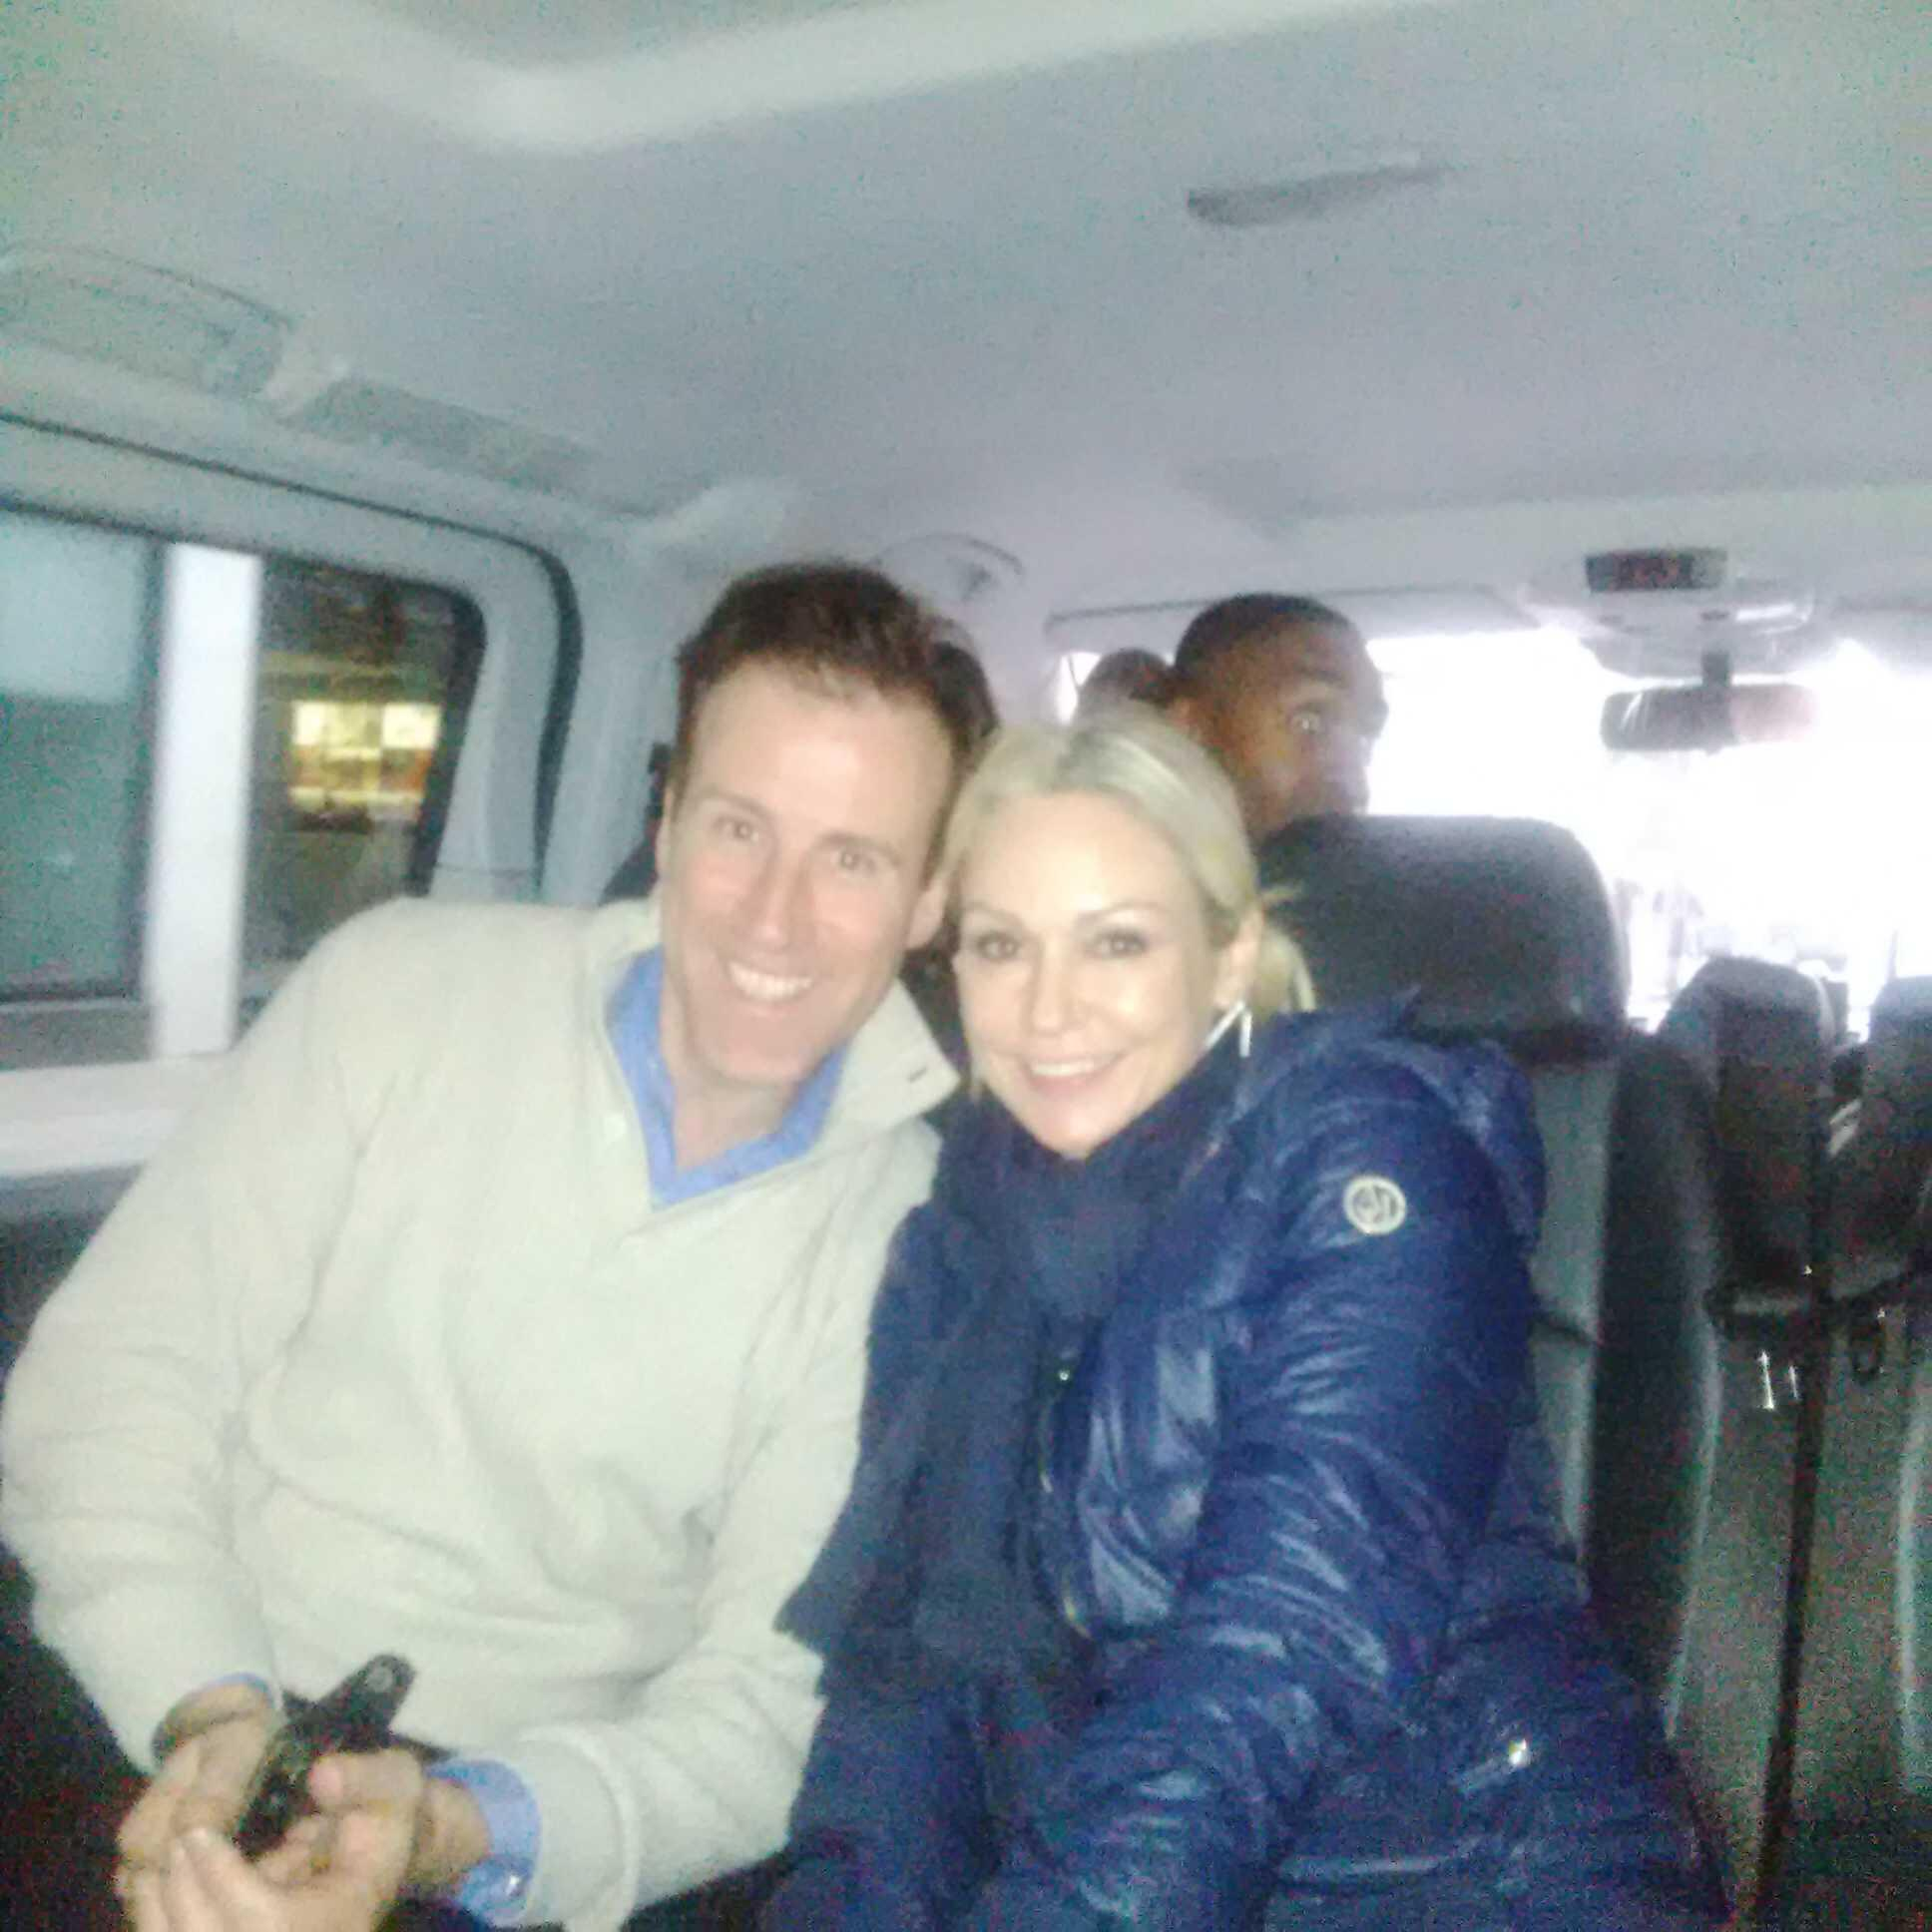 RT @judmoo: Also on our Strictly road trip...@TheAntonDuBeke + @KRihanoff being photobombed by @simonwebbe1. #SCD http://t.co/STumgBJ3Cd